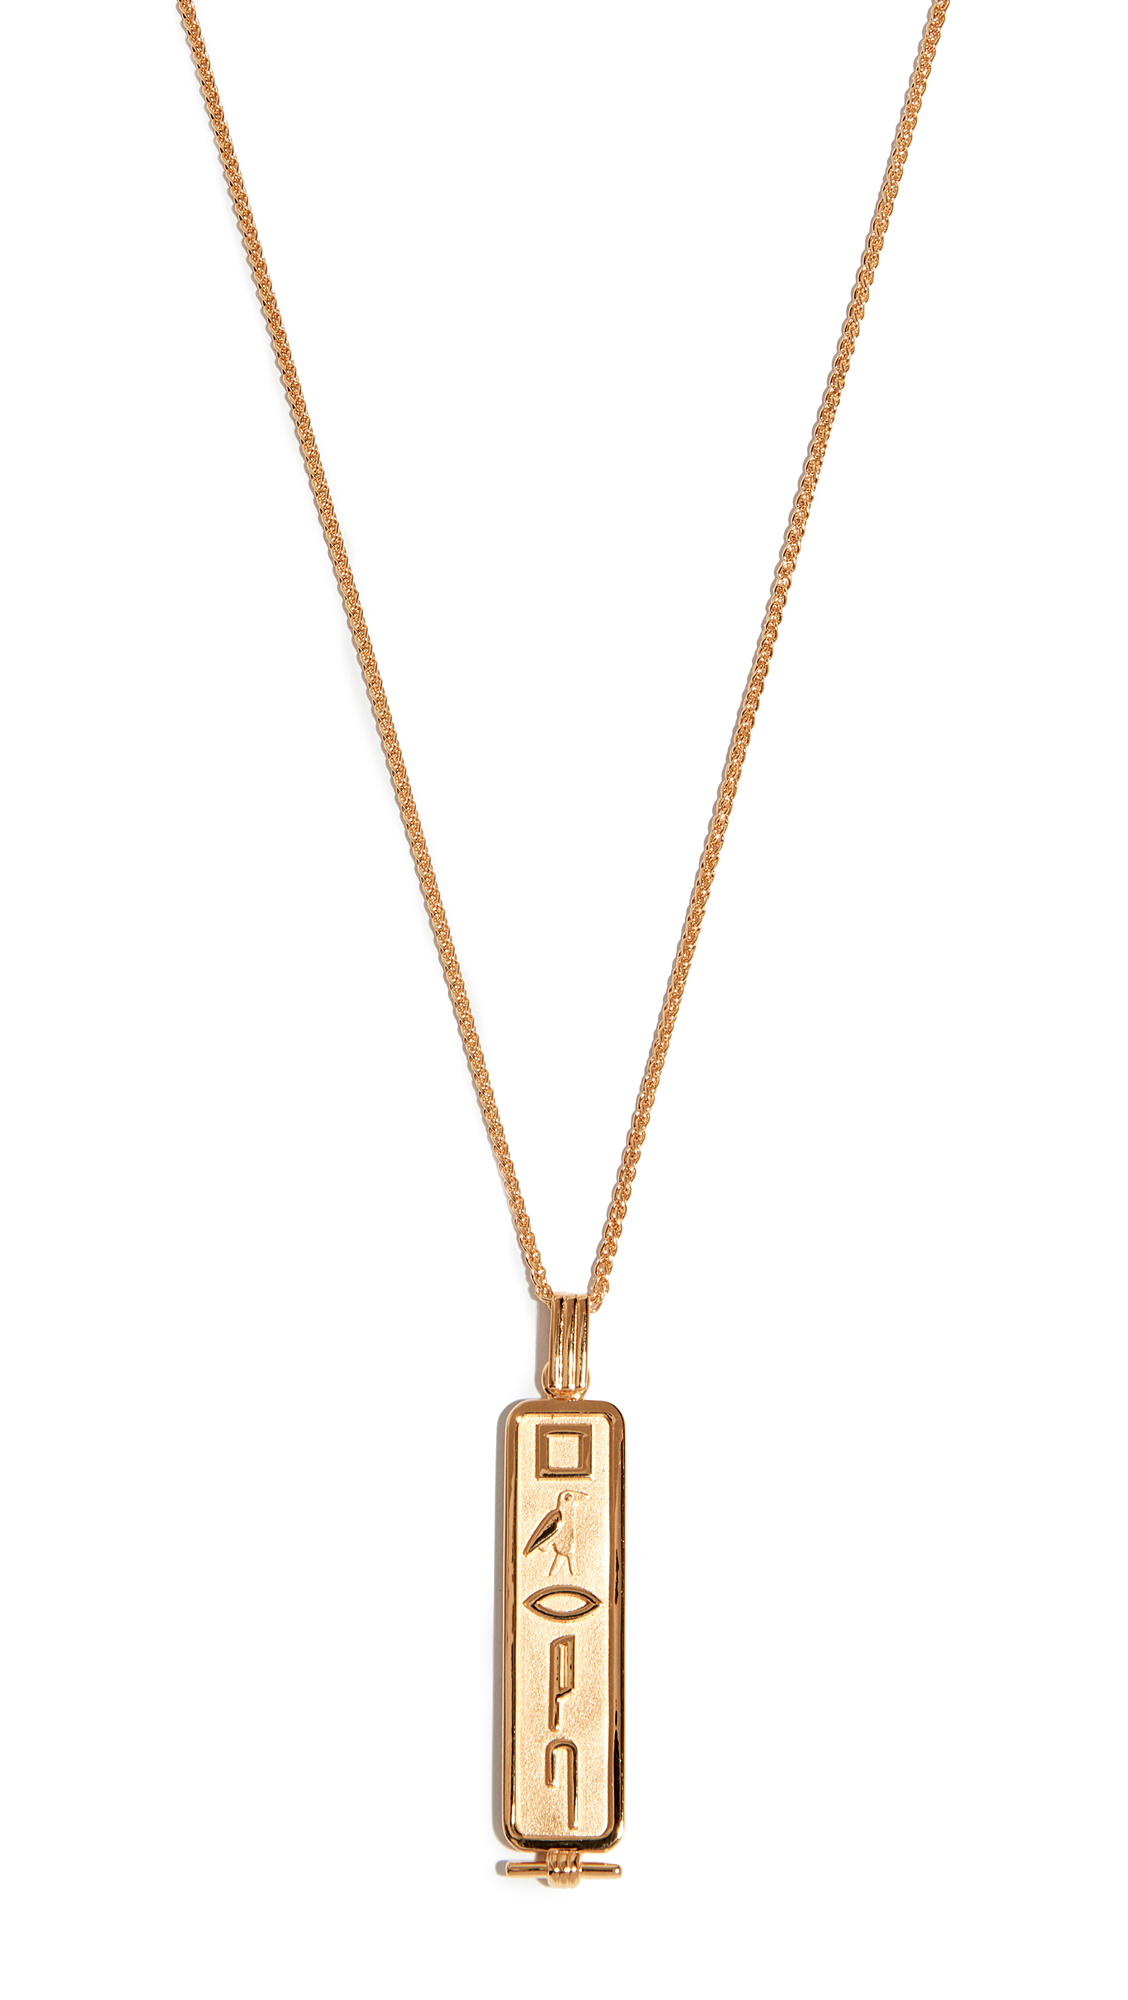 LUCY FOLK Le Memphis Necklace in Yellow Gold